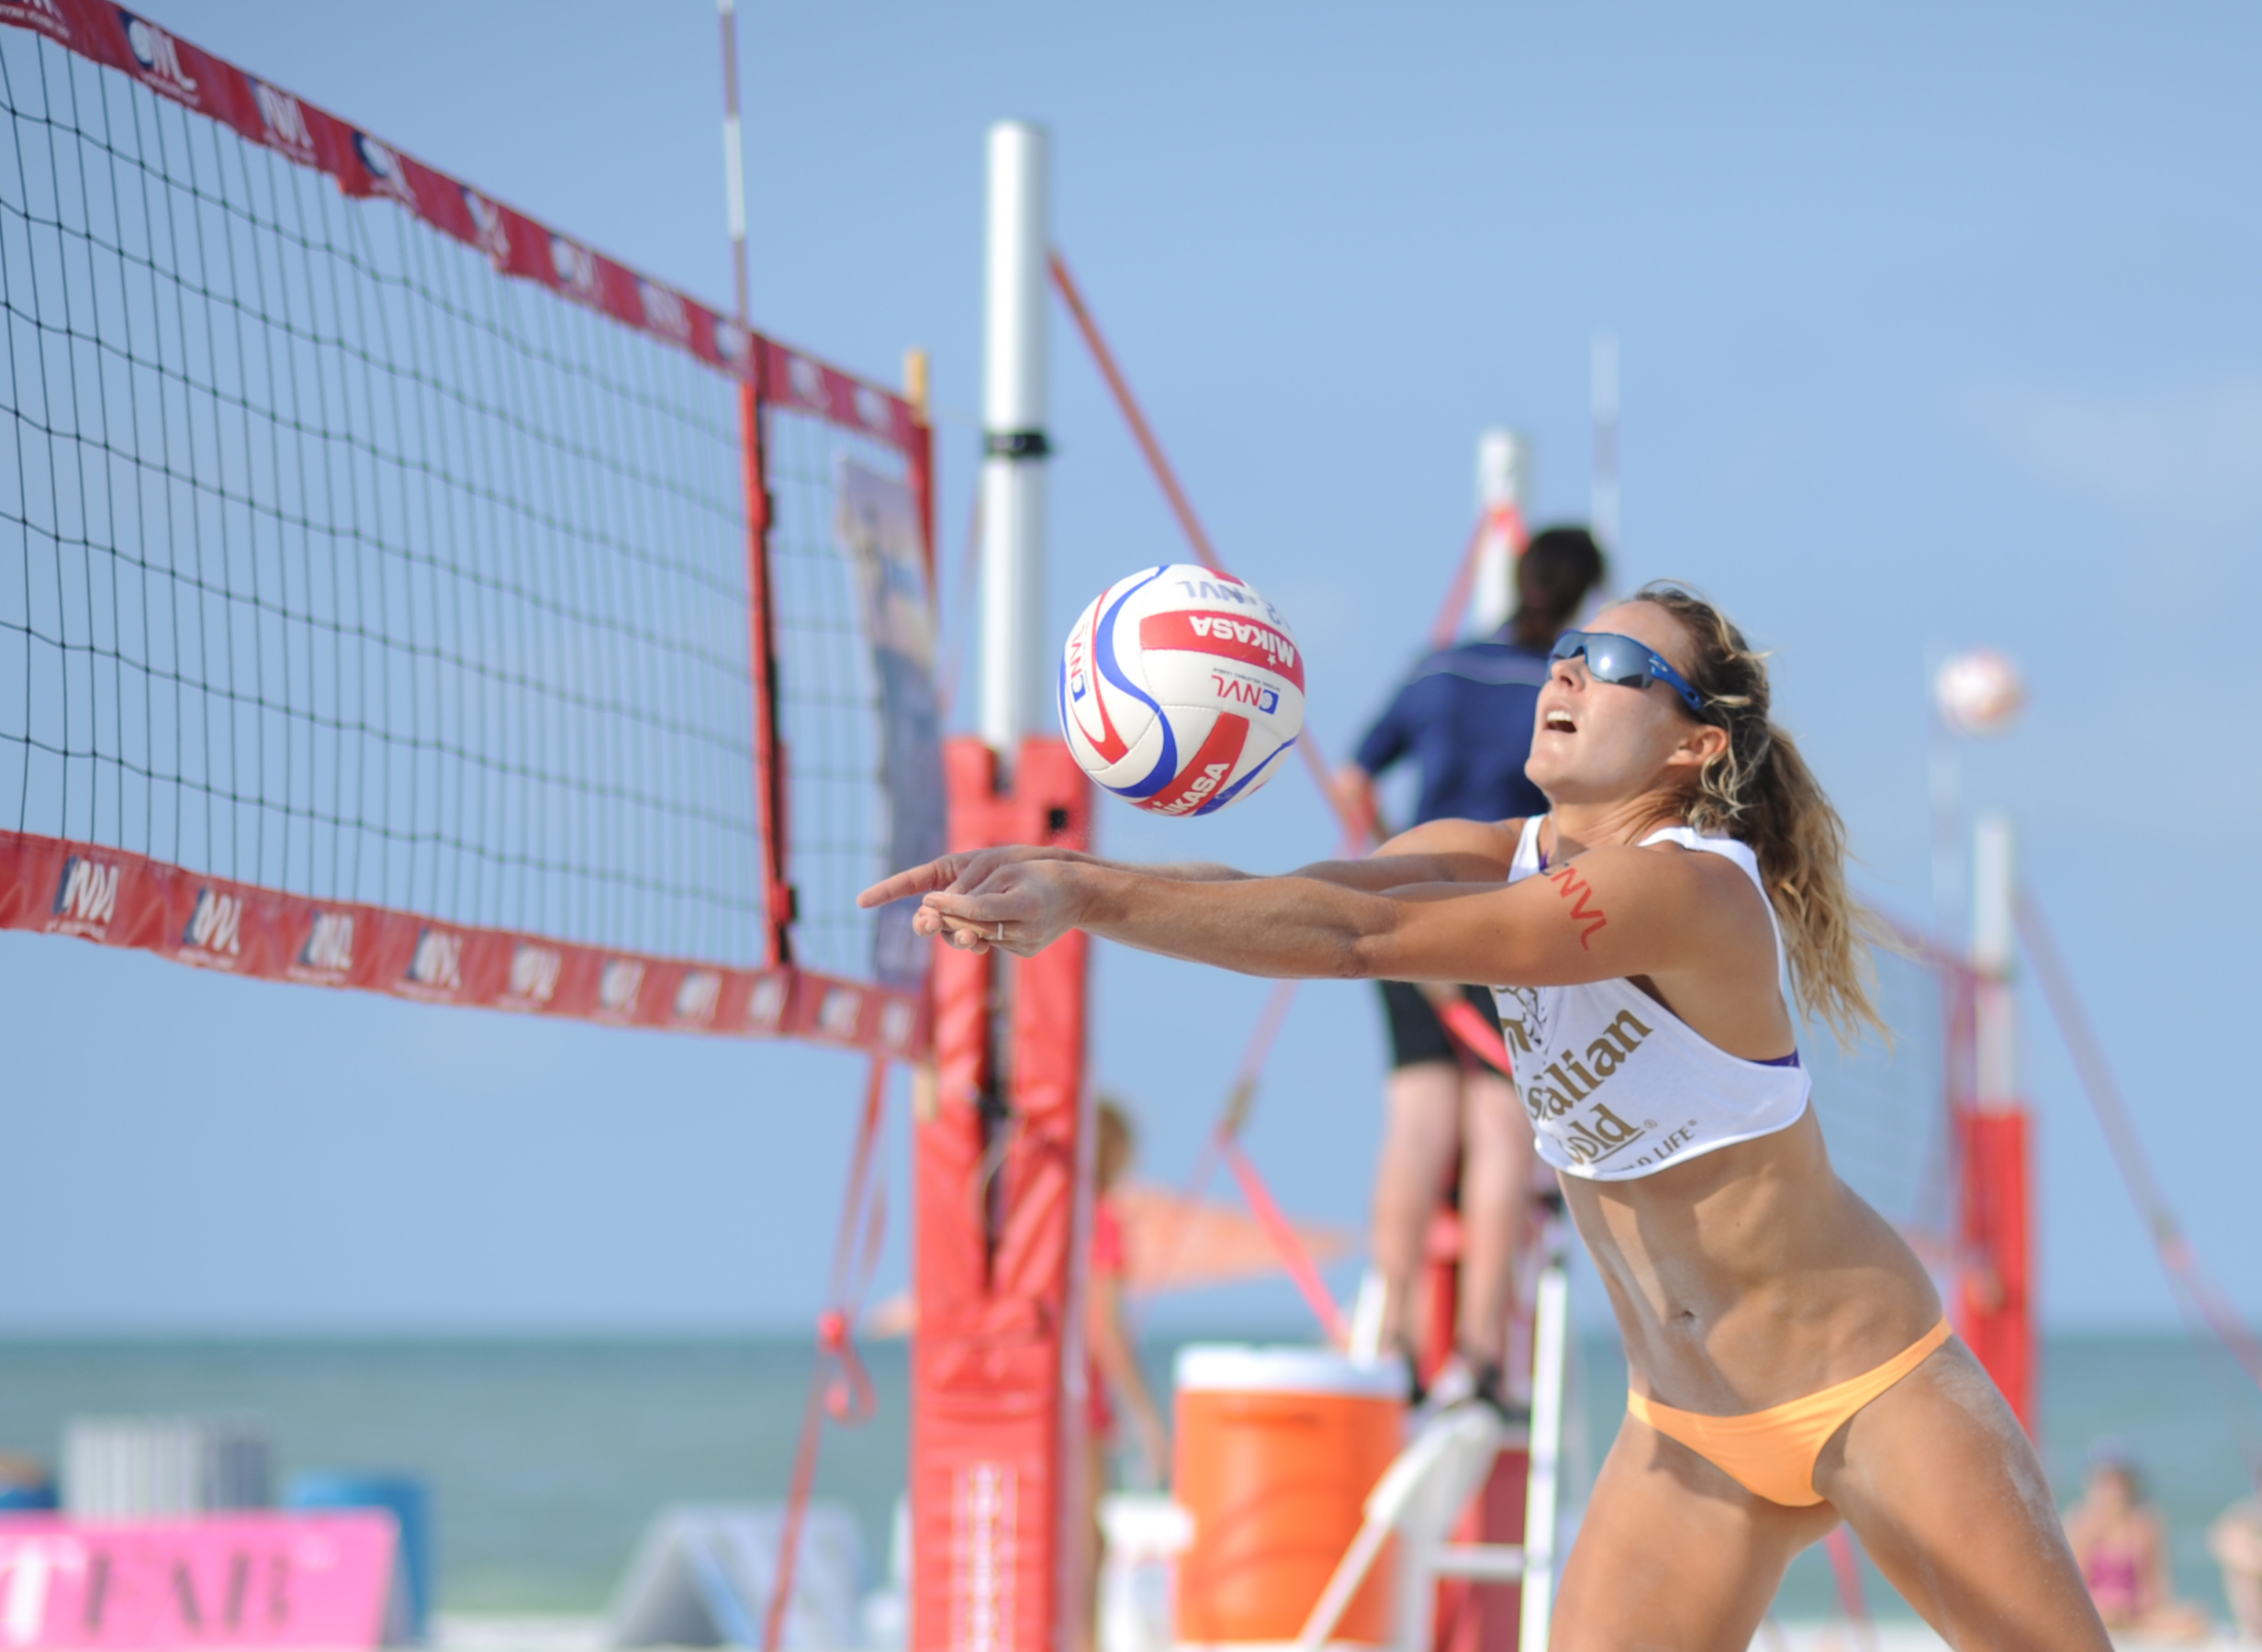 National Volleyball League $75,000 West Coast Championships Set for August 6 – 8 in Hermosa Beach